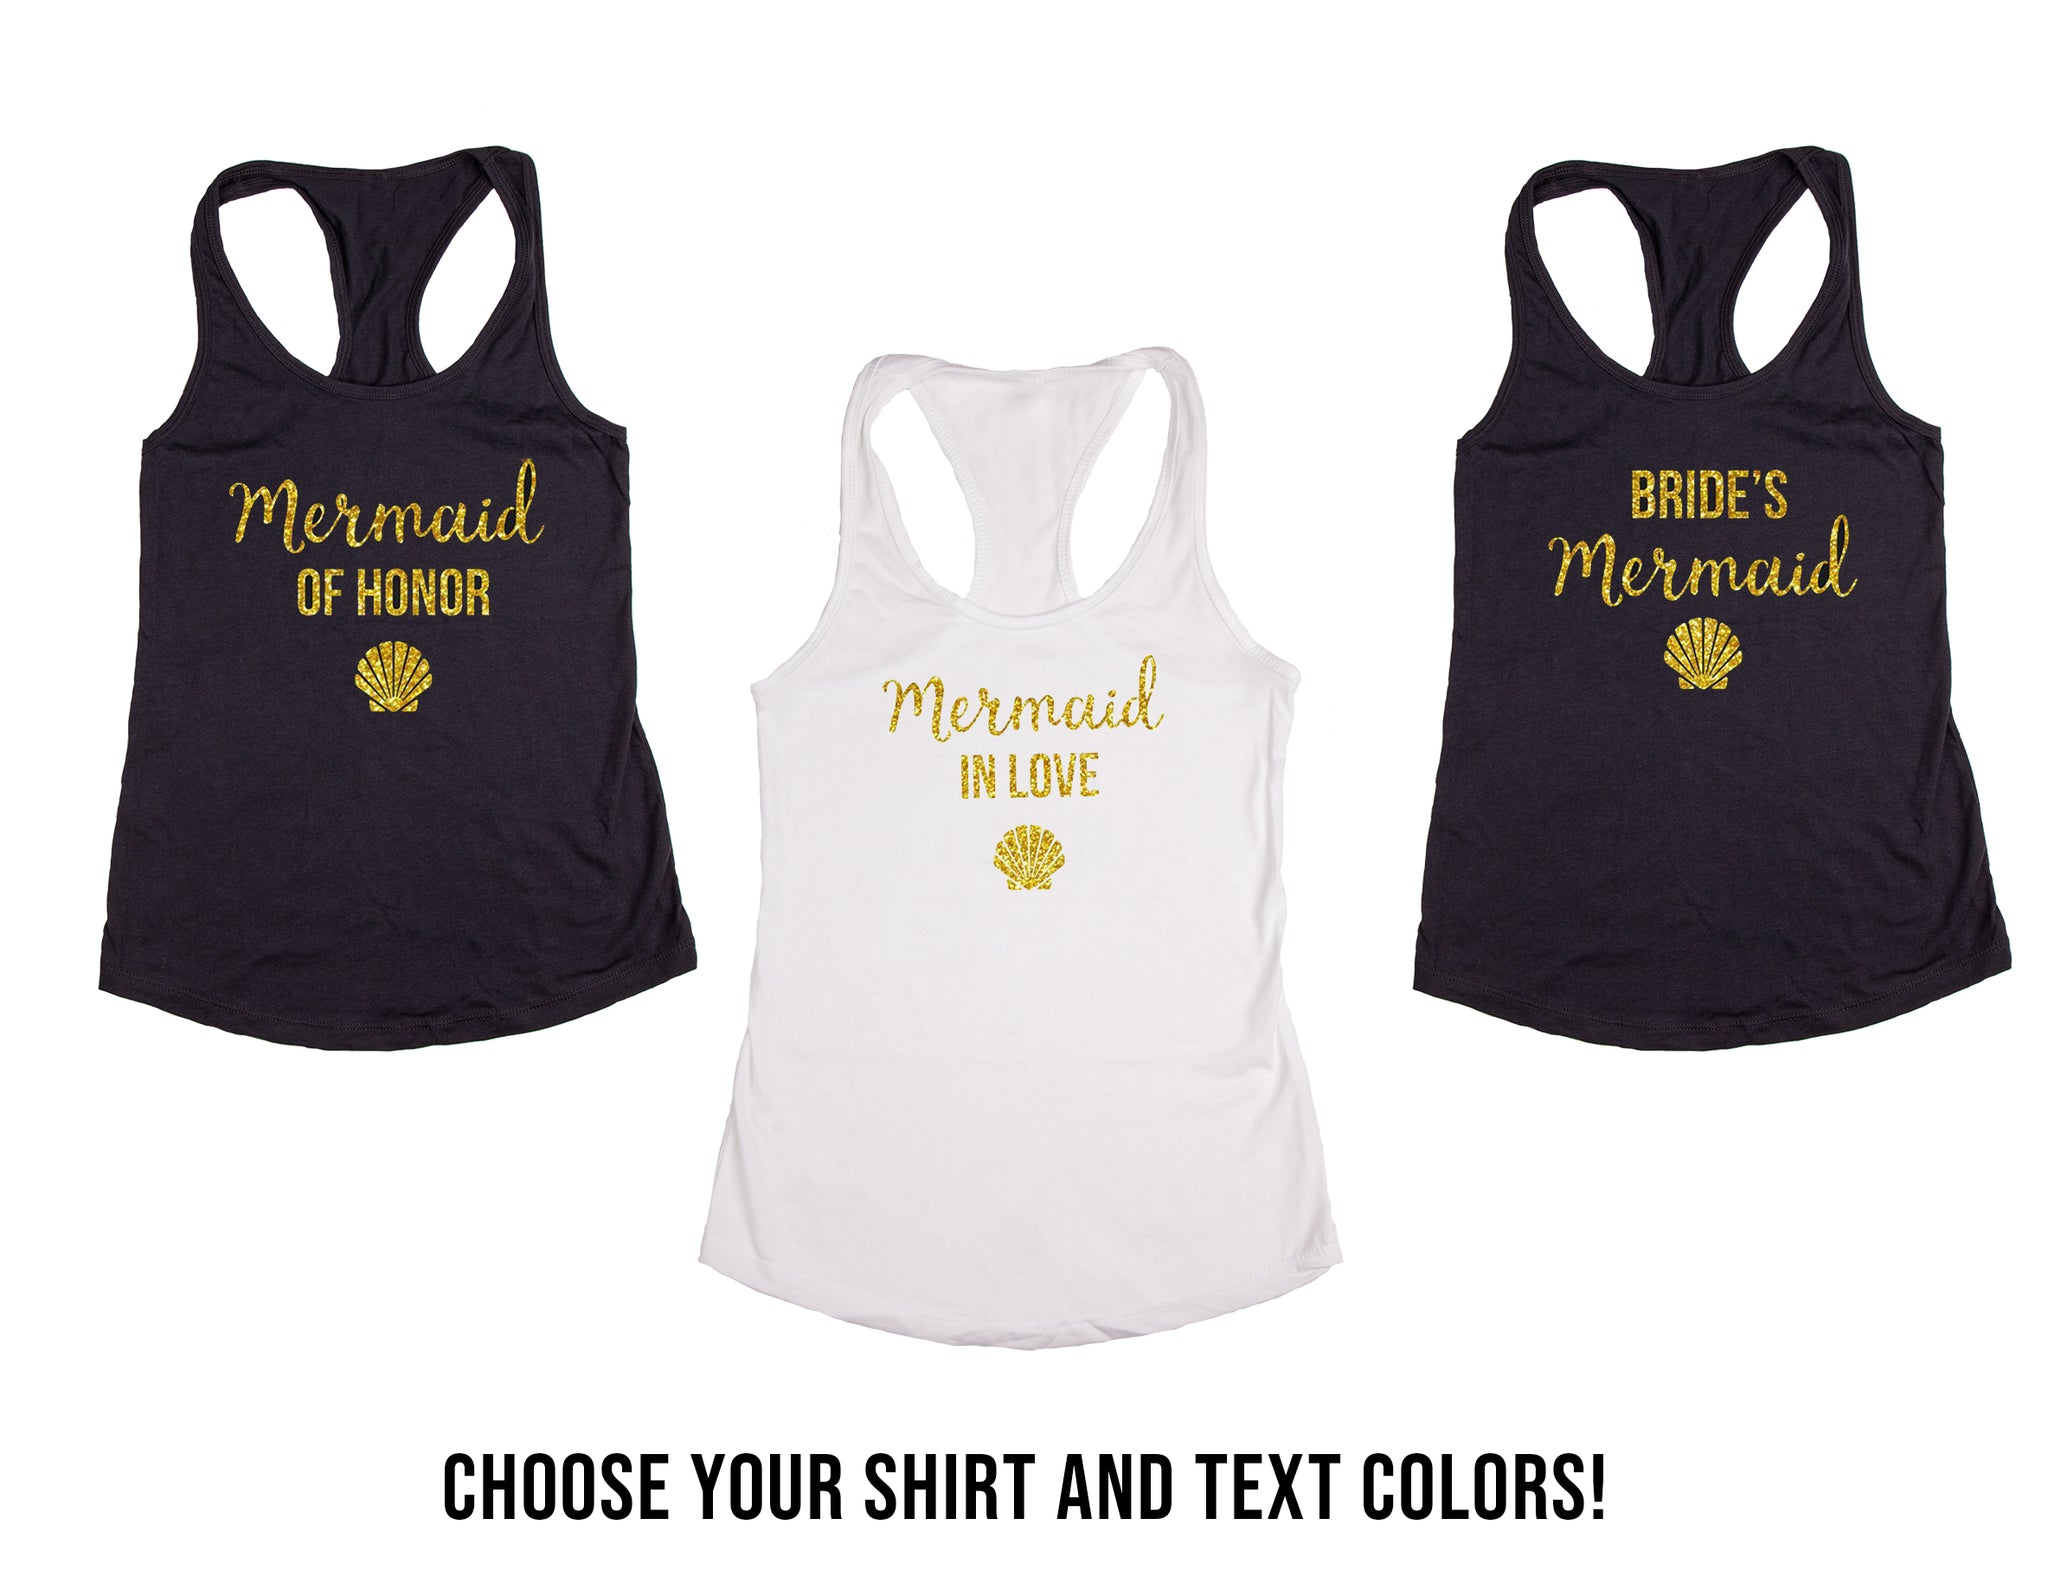 Mermaid Themed Wedding, Bachelorette & Bridal Party Tank Tops or V-Necks Pack